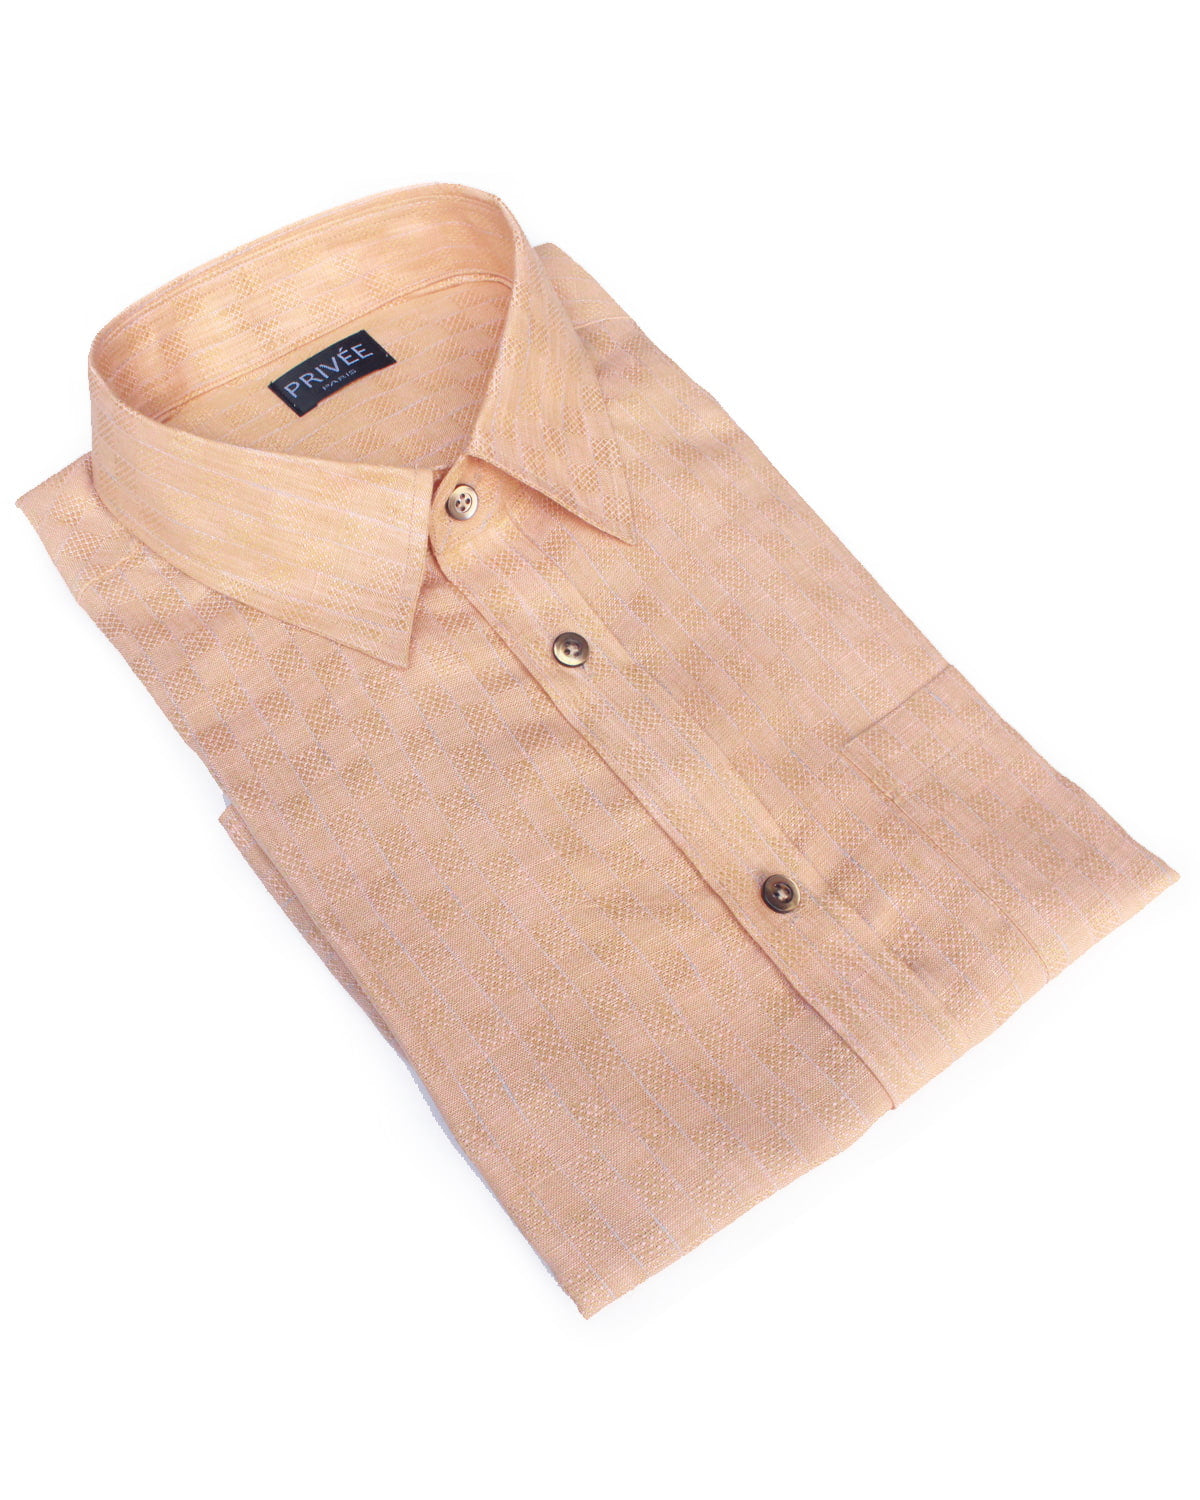 Light Orange Linen Shirt - Privee Paris